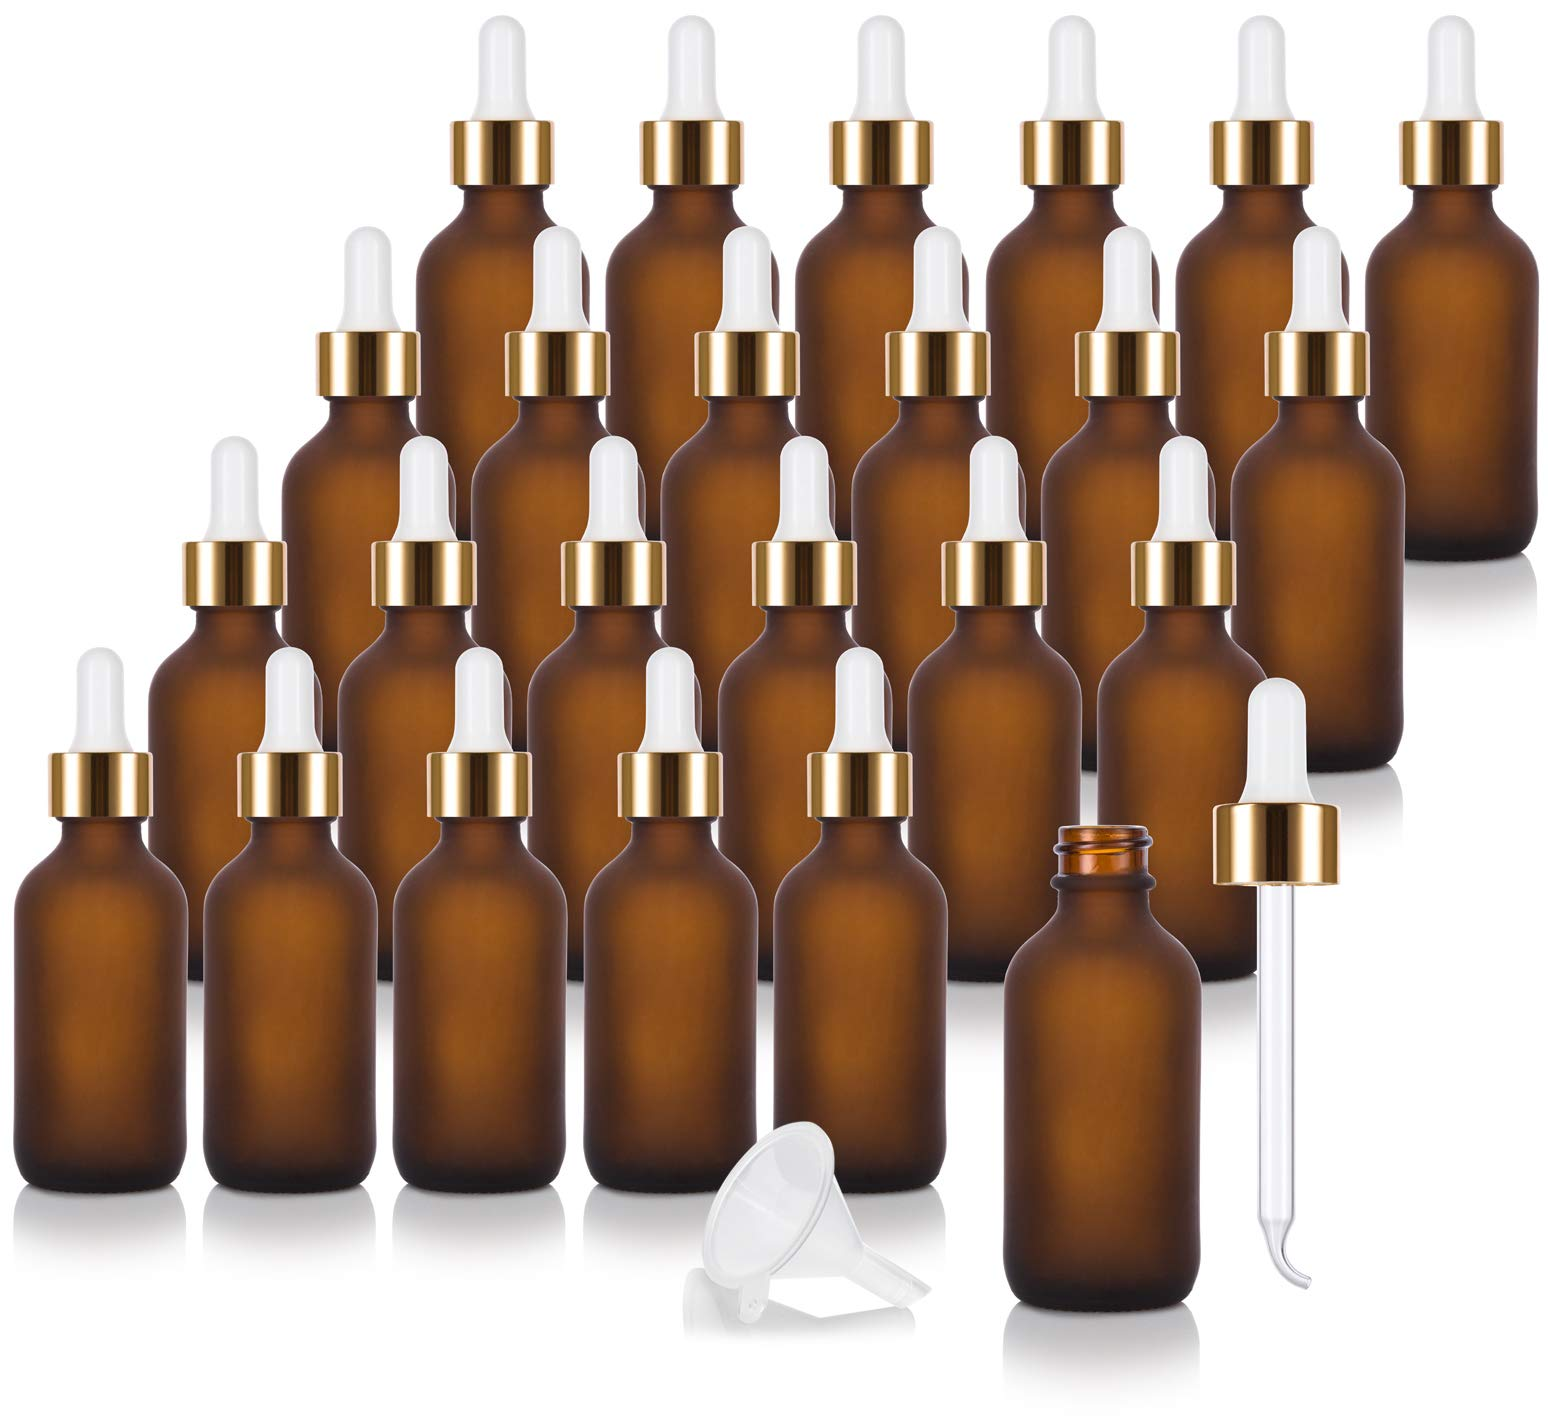 2 oz Frosted Amber Glass Boston Round Bottle with Gold Metal and Glass Dropper (24 pack) + Funnel for Essential oils, Aromatherapy, E-liquid, Food grade, BPA free2 by JUVITUS